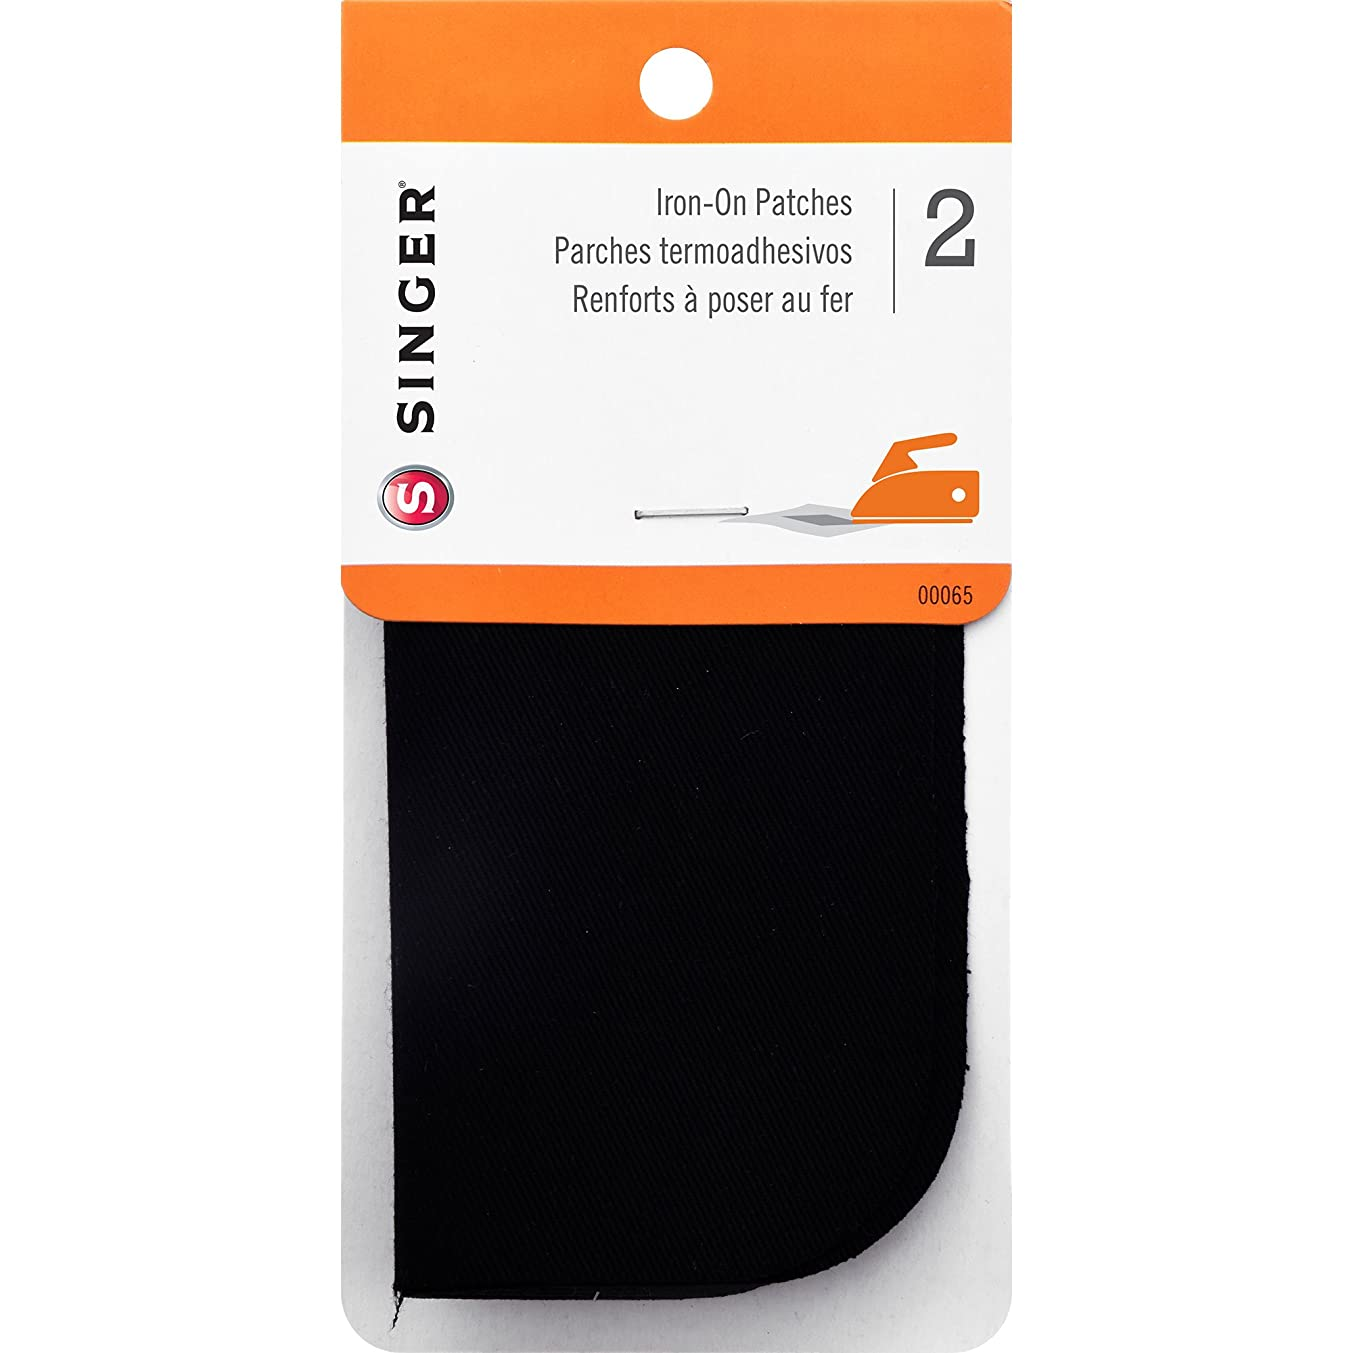 SINGER 00065 Iron-On Patches for Clothing Repair, 5-inch by 5-inch, 2-Count, Black